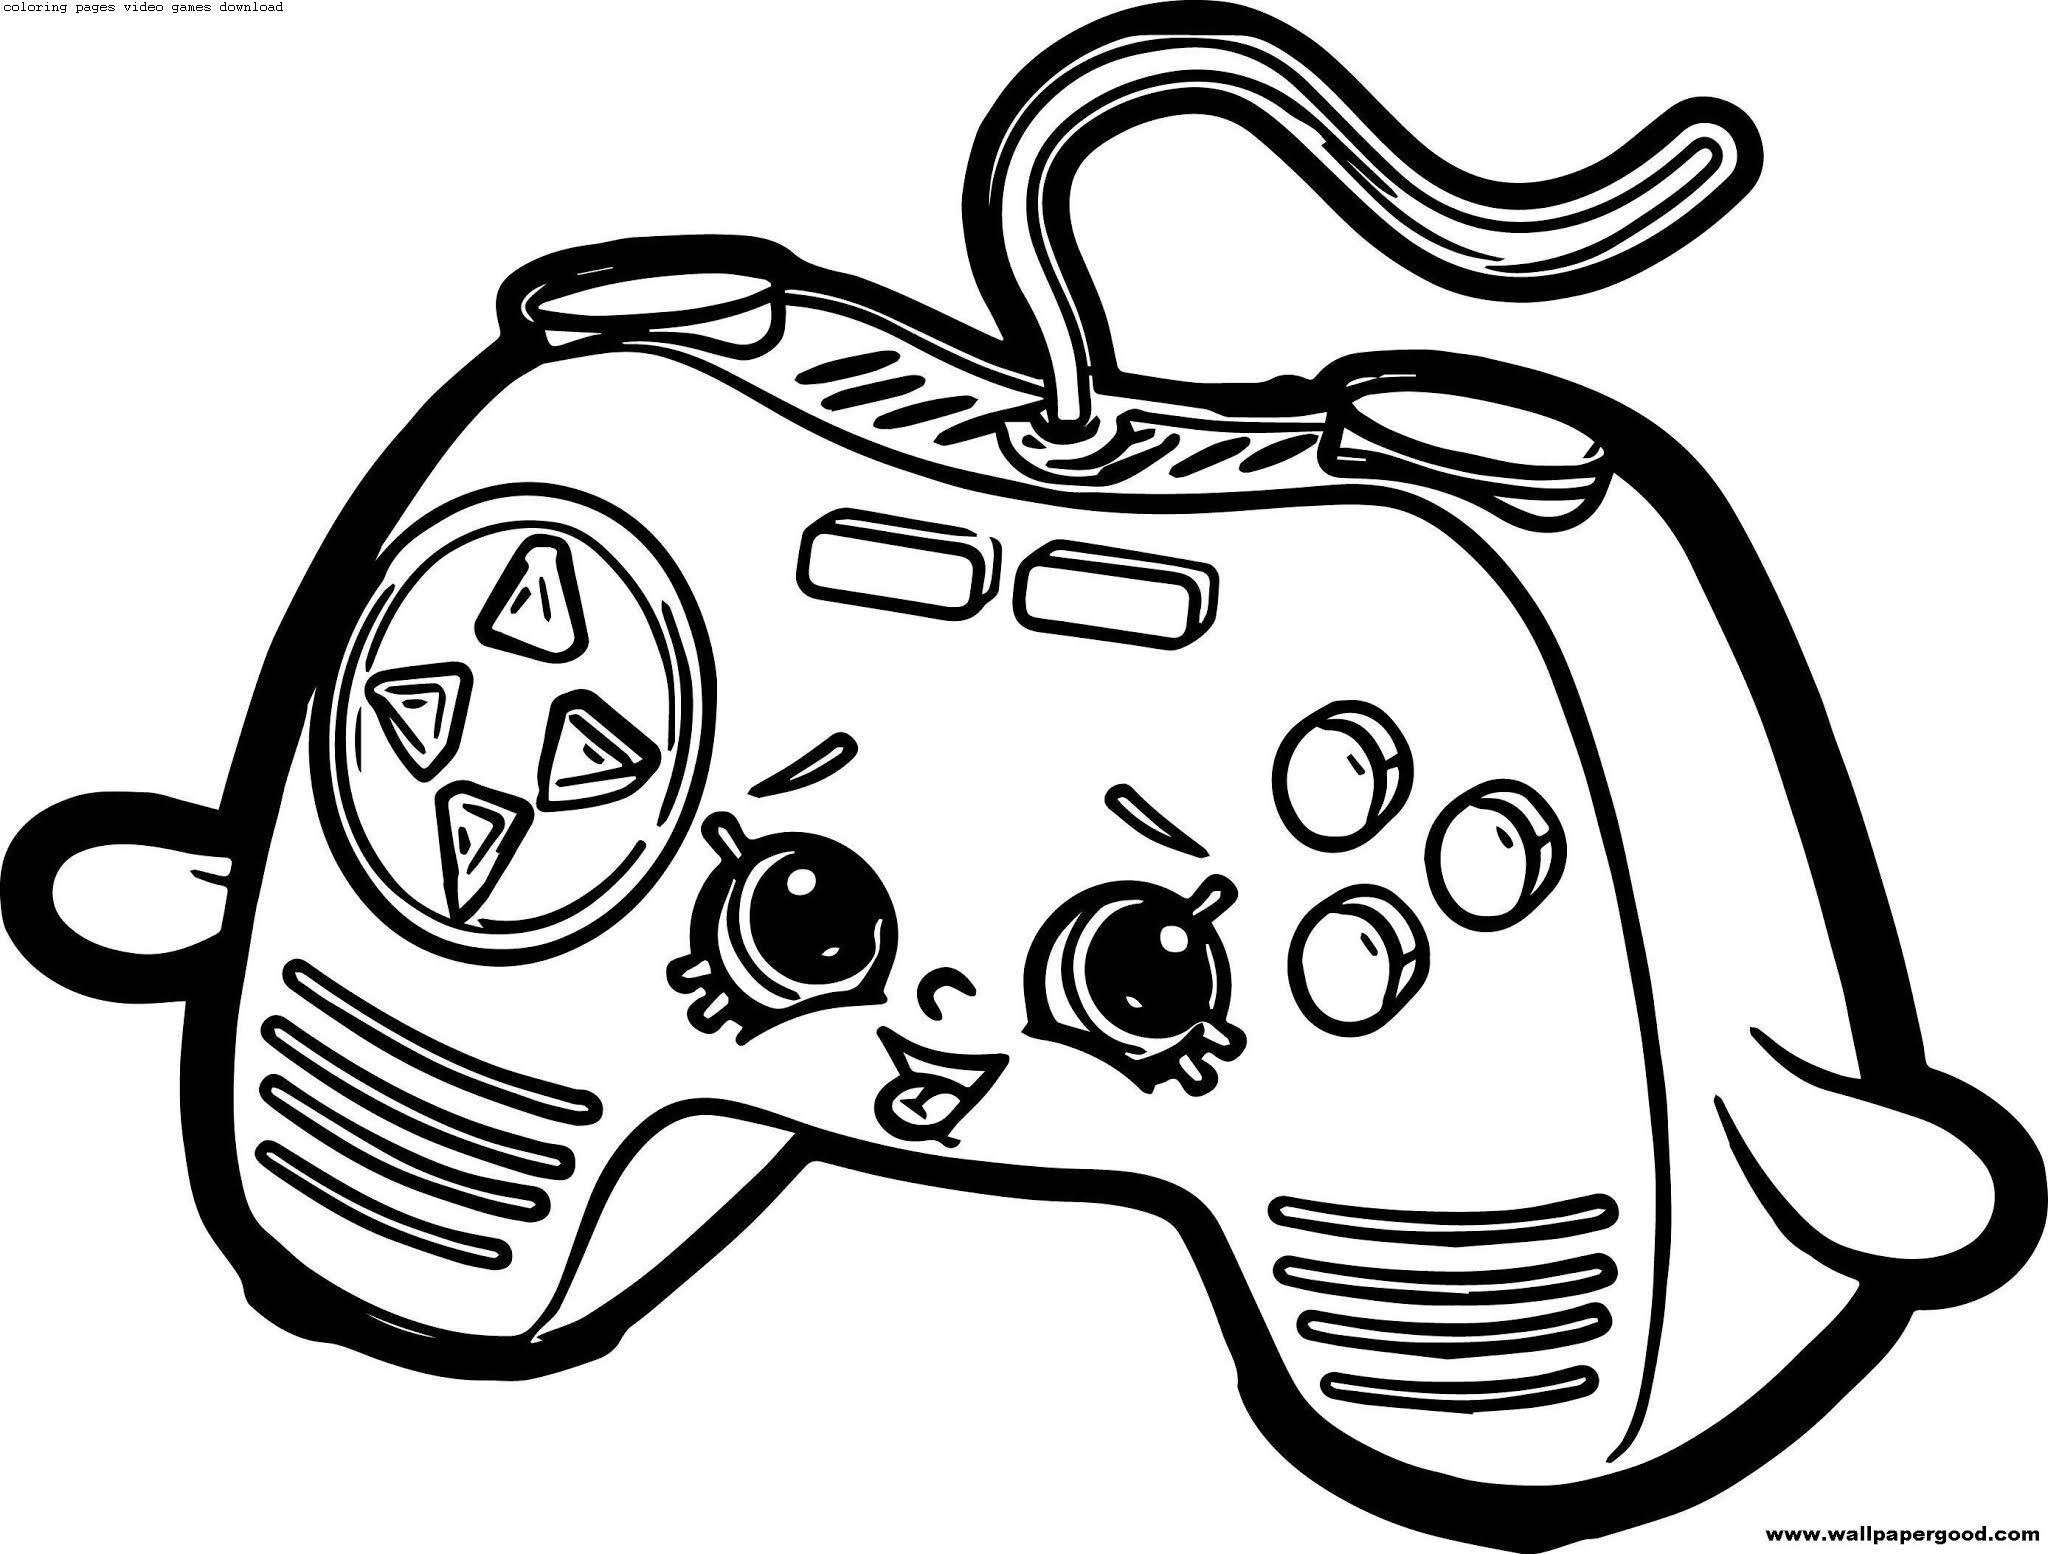 barbie video game hero coloring pages